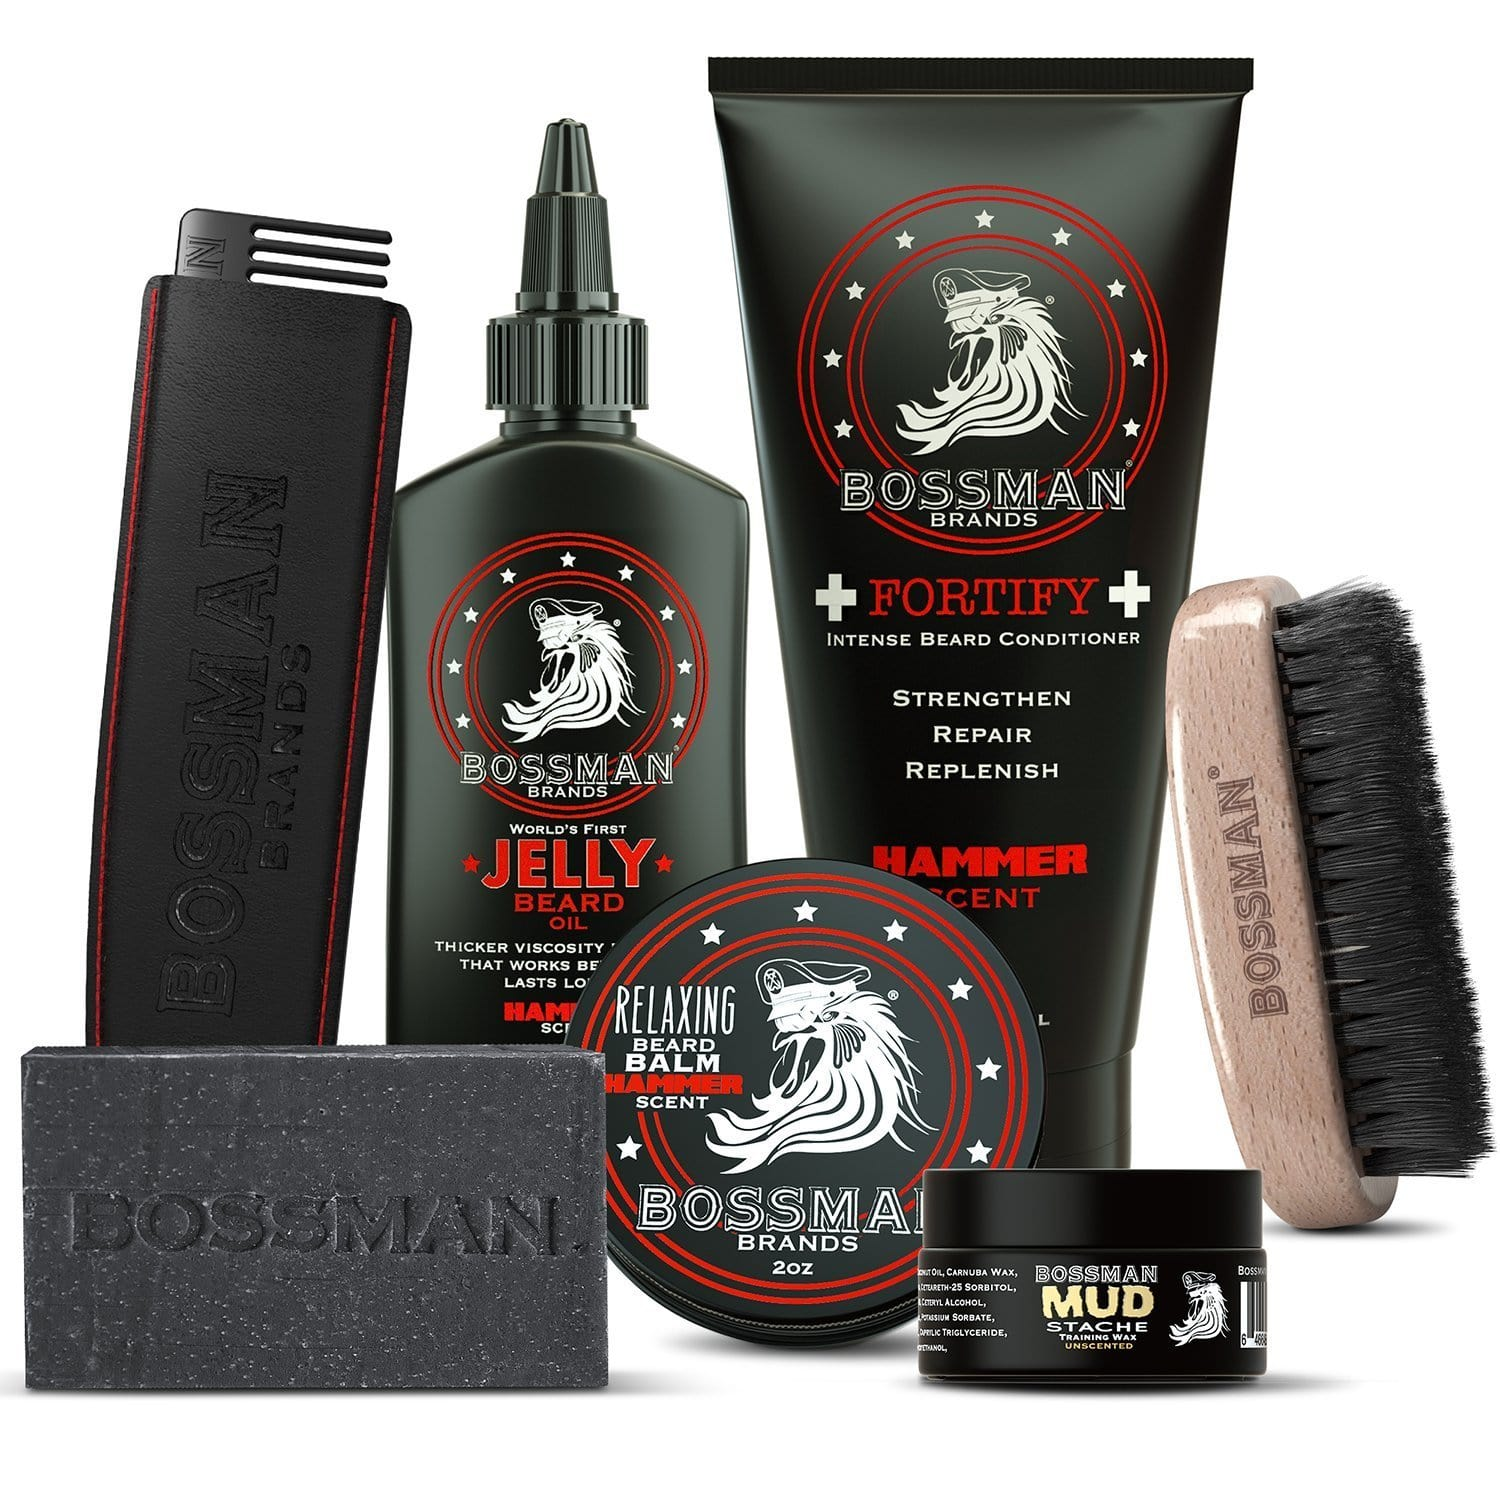 Bossman Big Boss Beard Care Kit - Hammer Scent